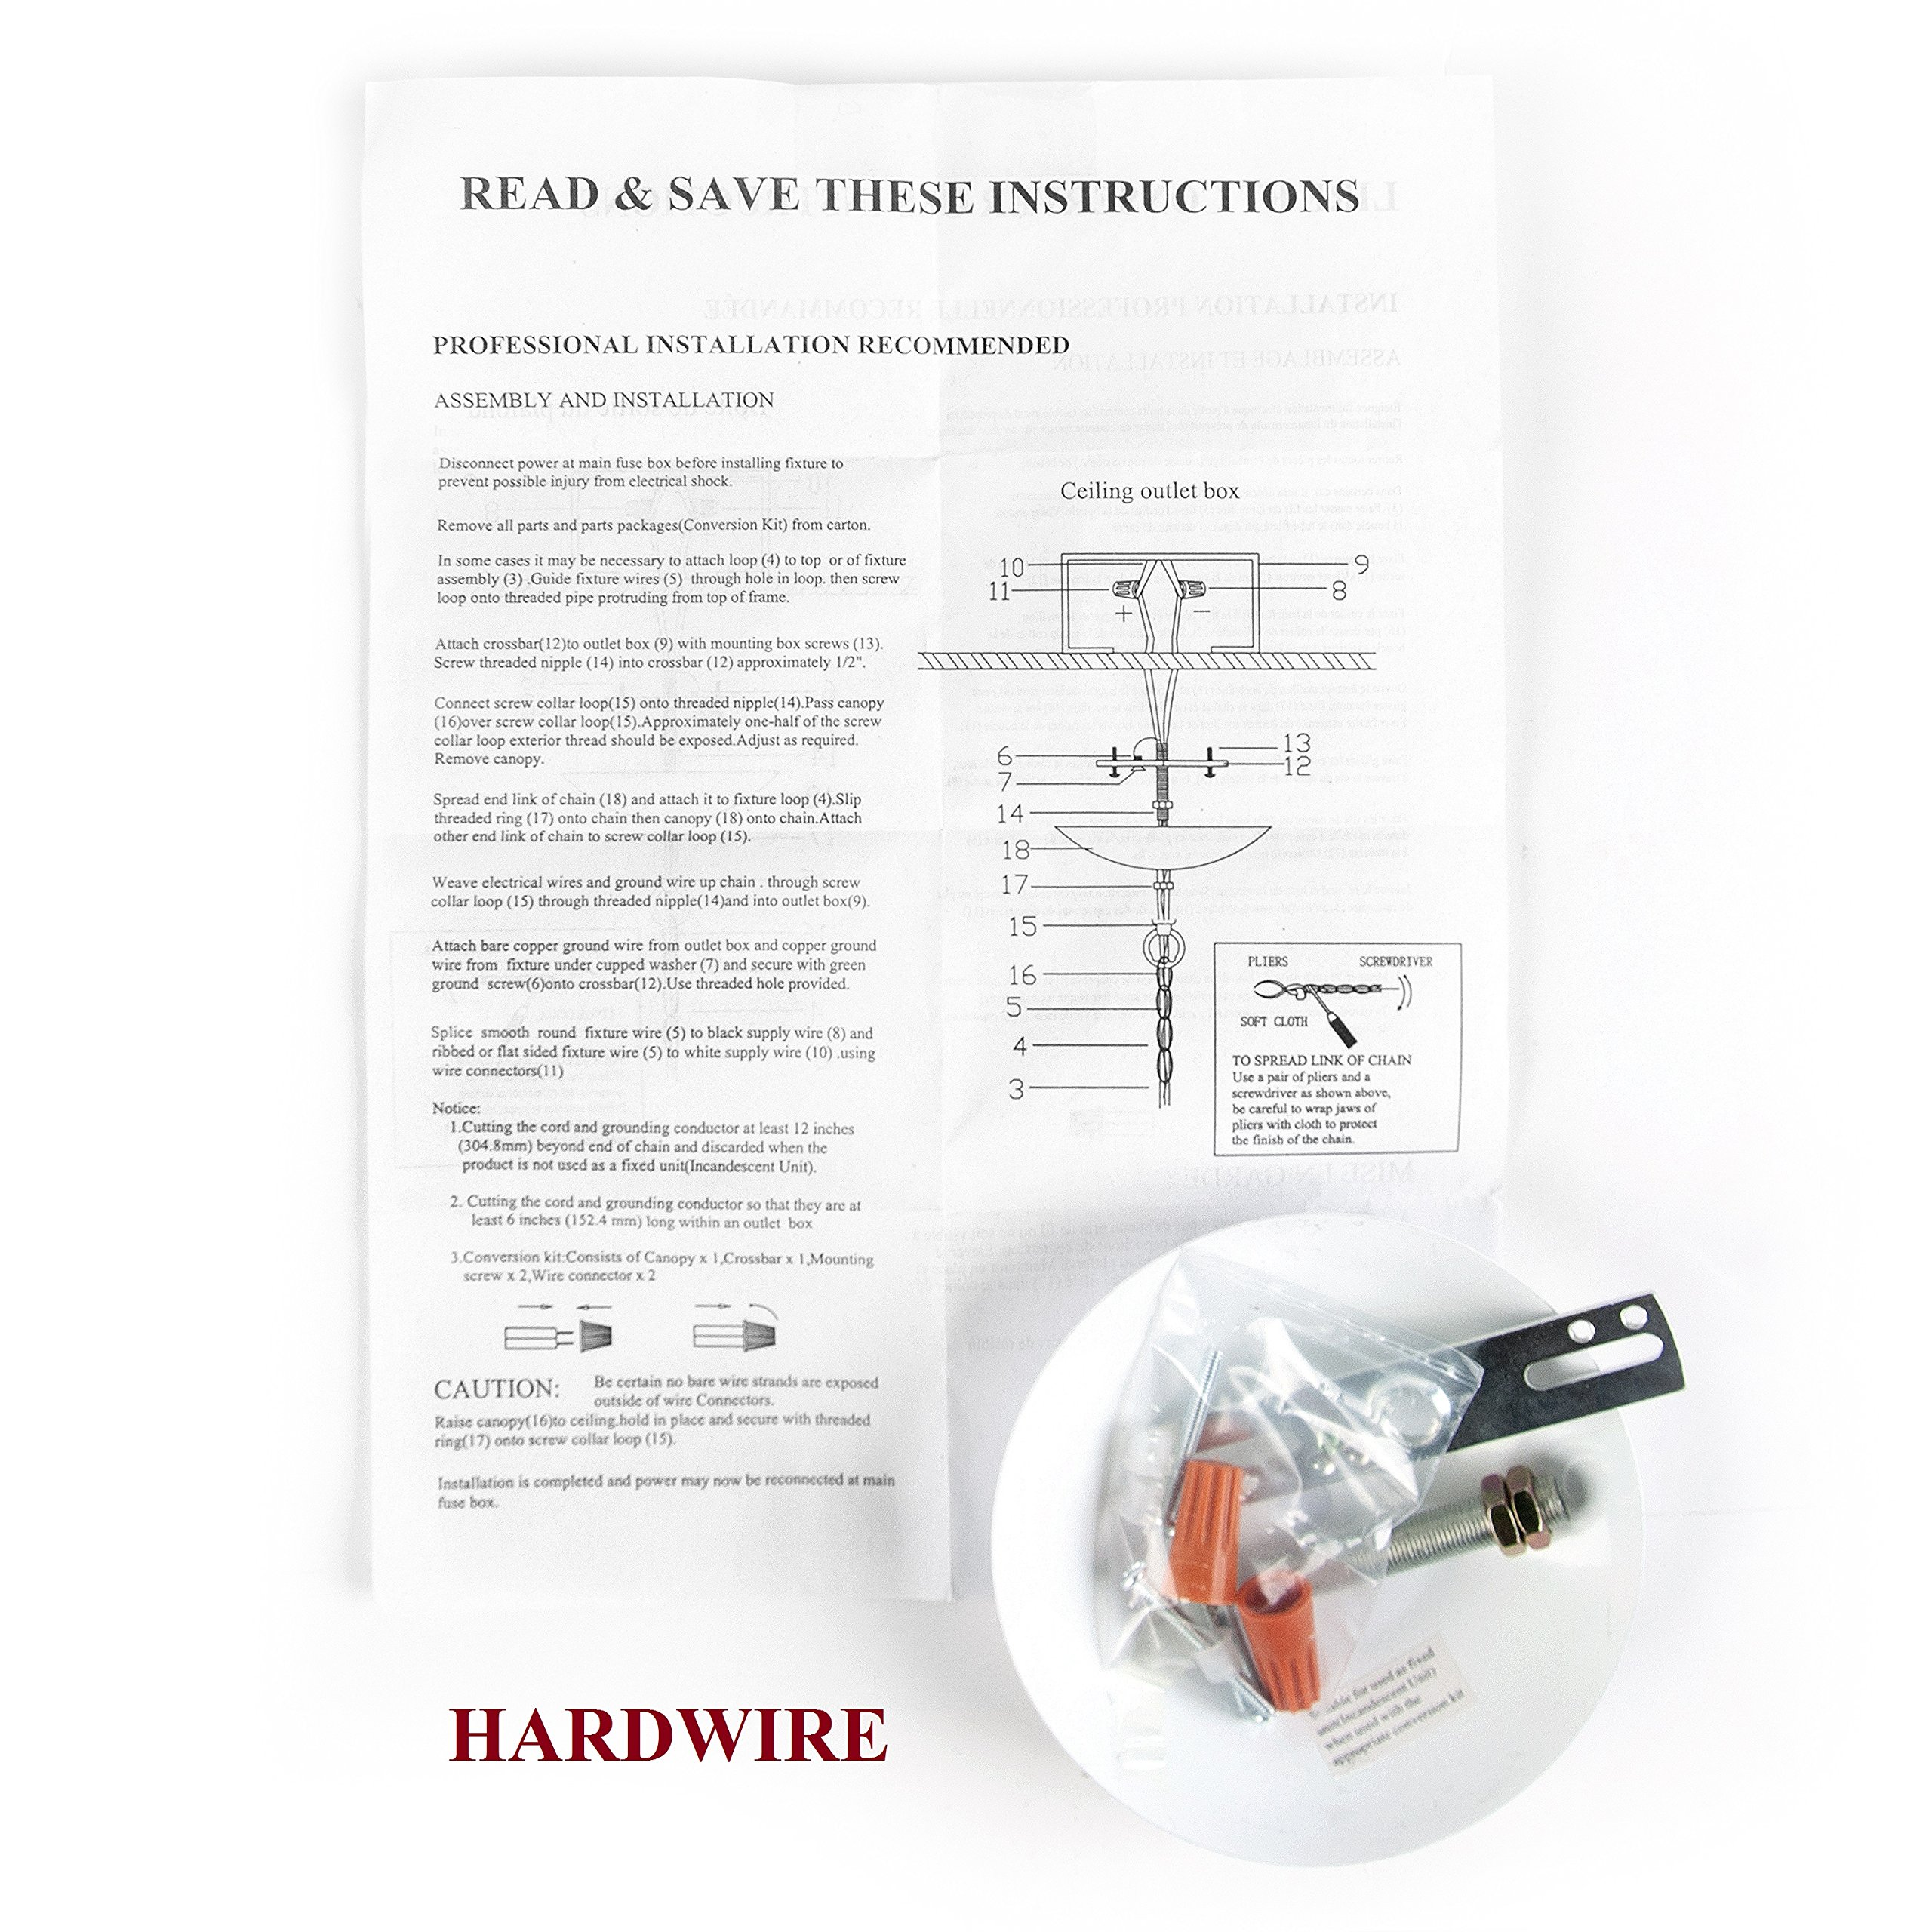 Tadpoles 4-Bulb Vintage Plug-In or Hardwired Mini-Chandelier, White Diamond by Tadpoles (Image #6)